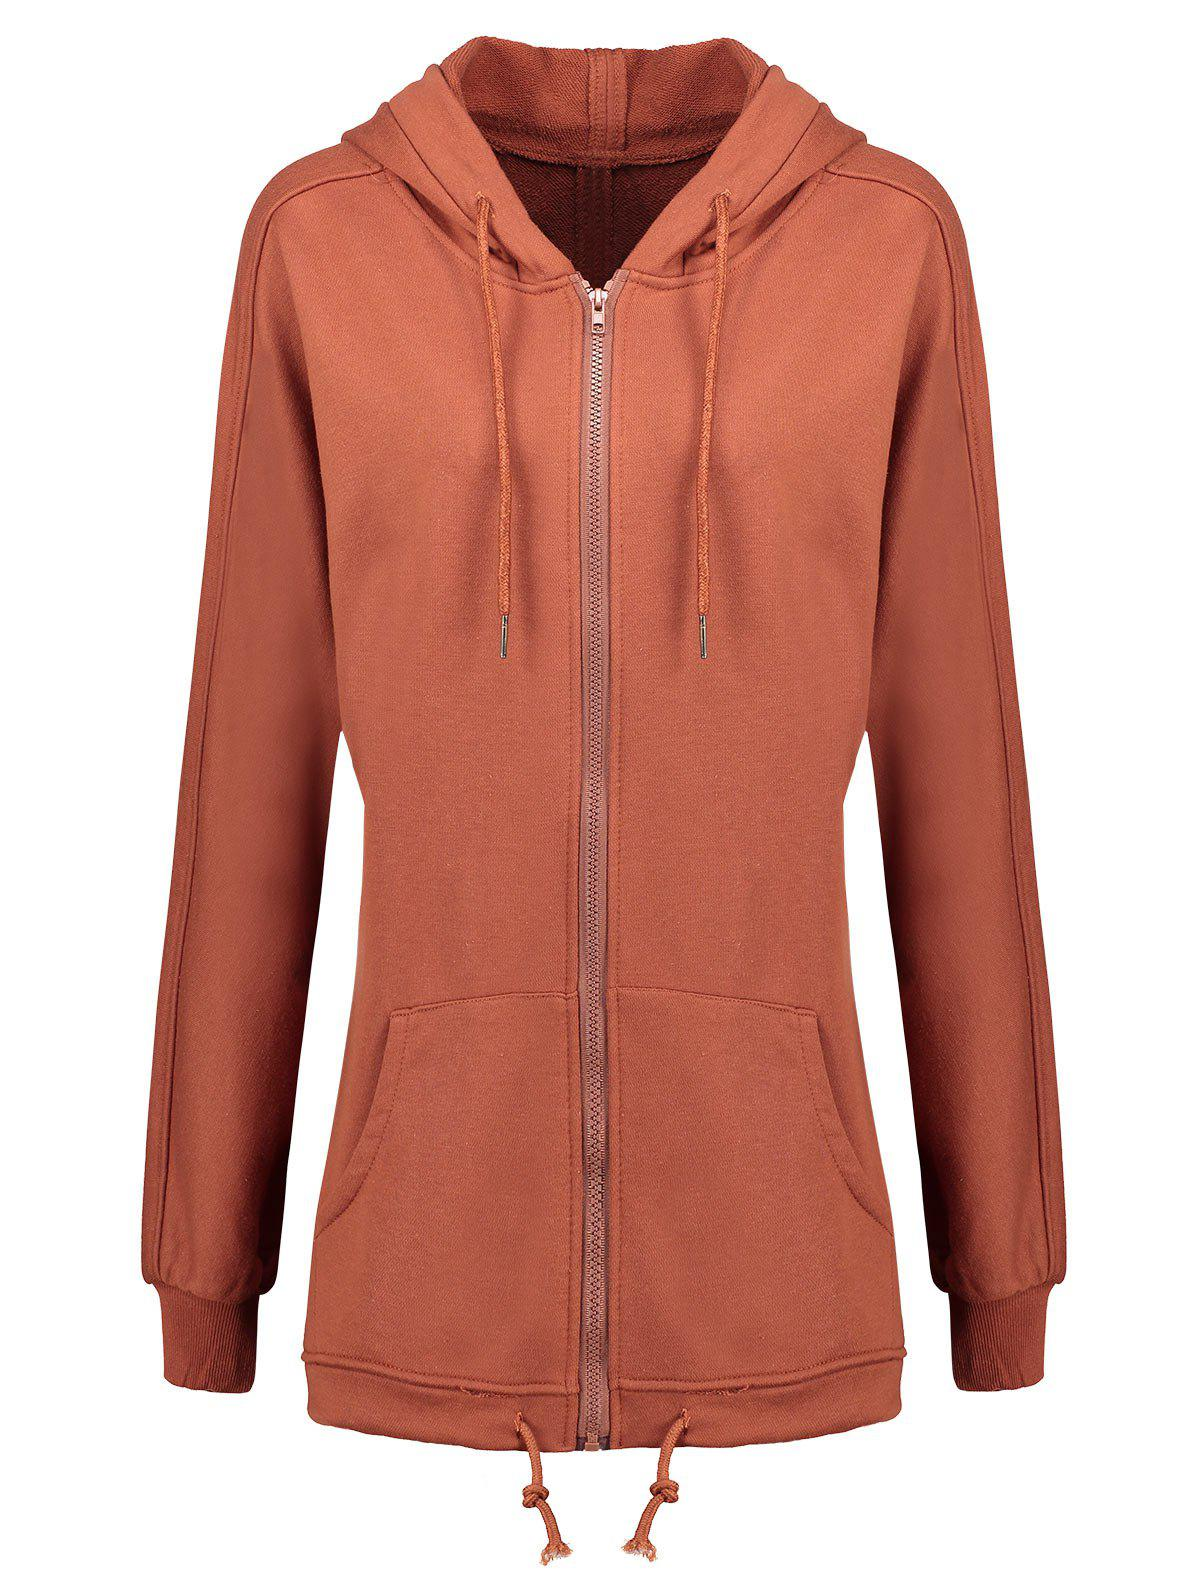 Plus Size Zip Up Hooded Coat - SUGAR HONEY 5XL